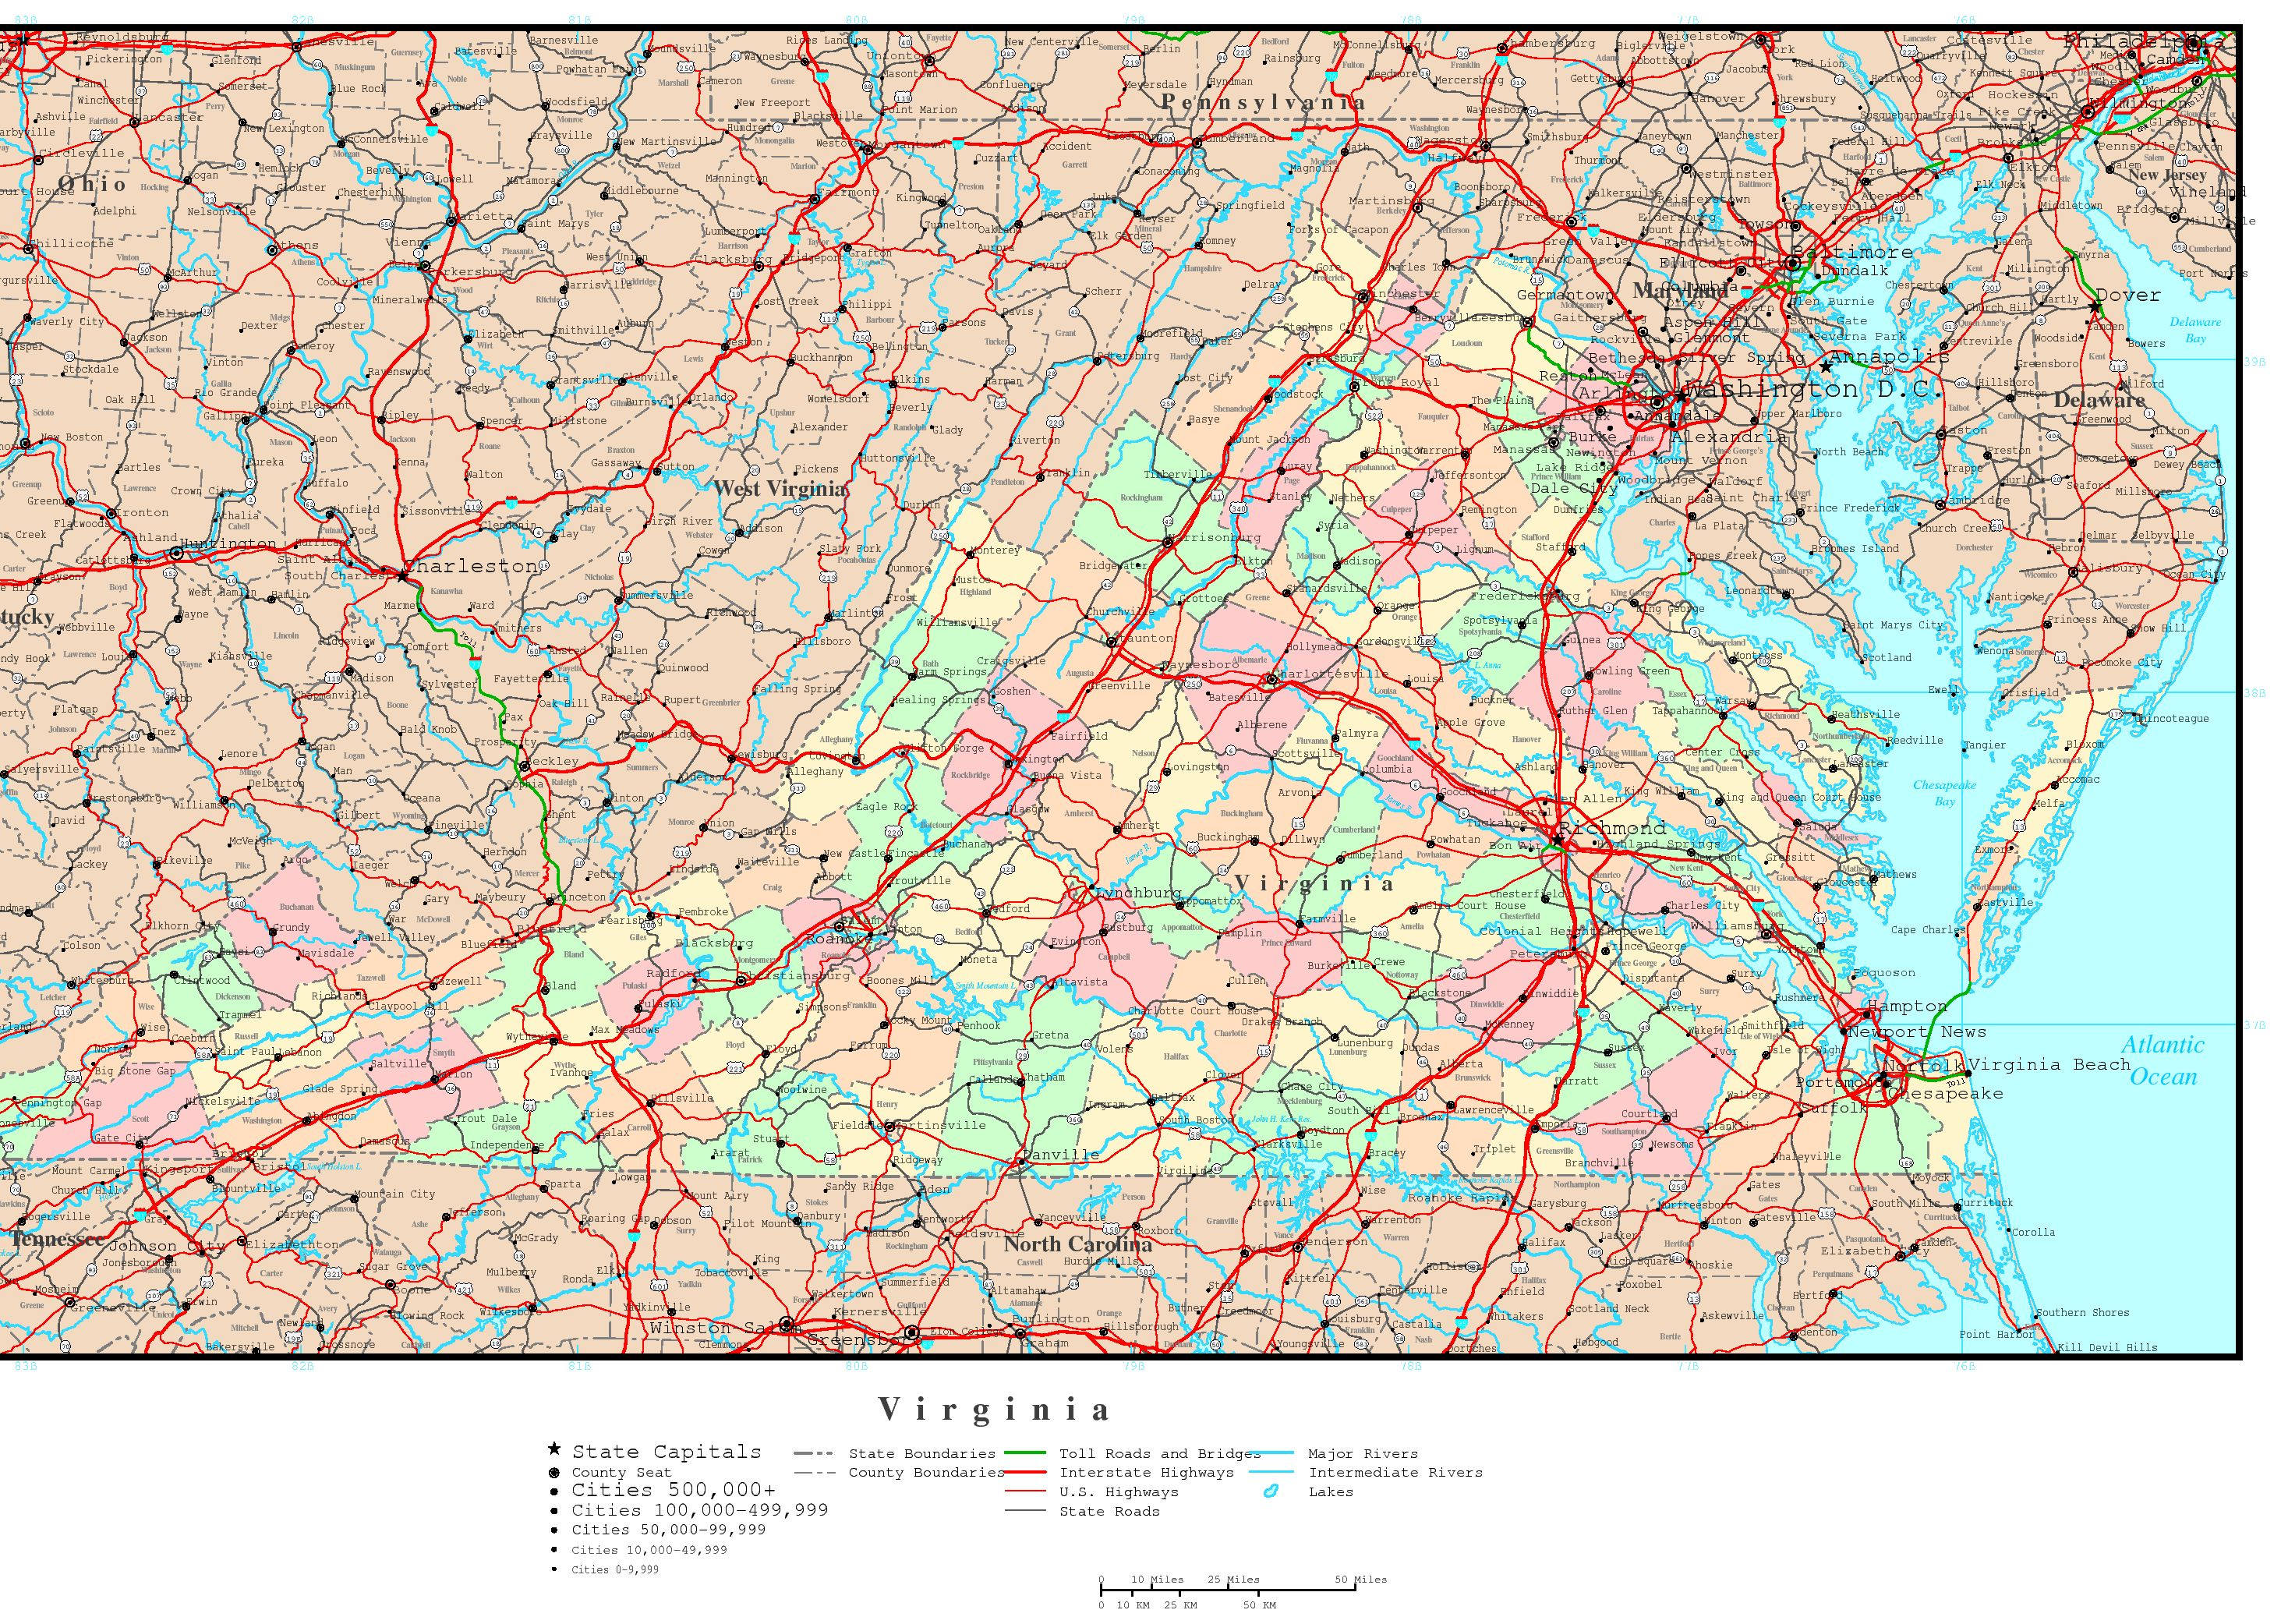 Virginia Political Map - Va map with cities